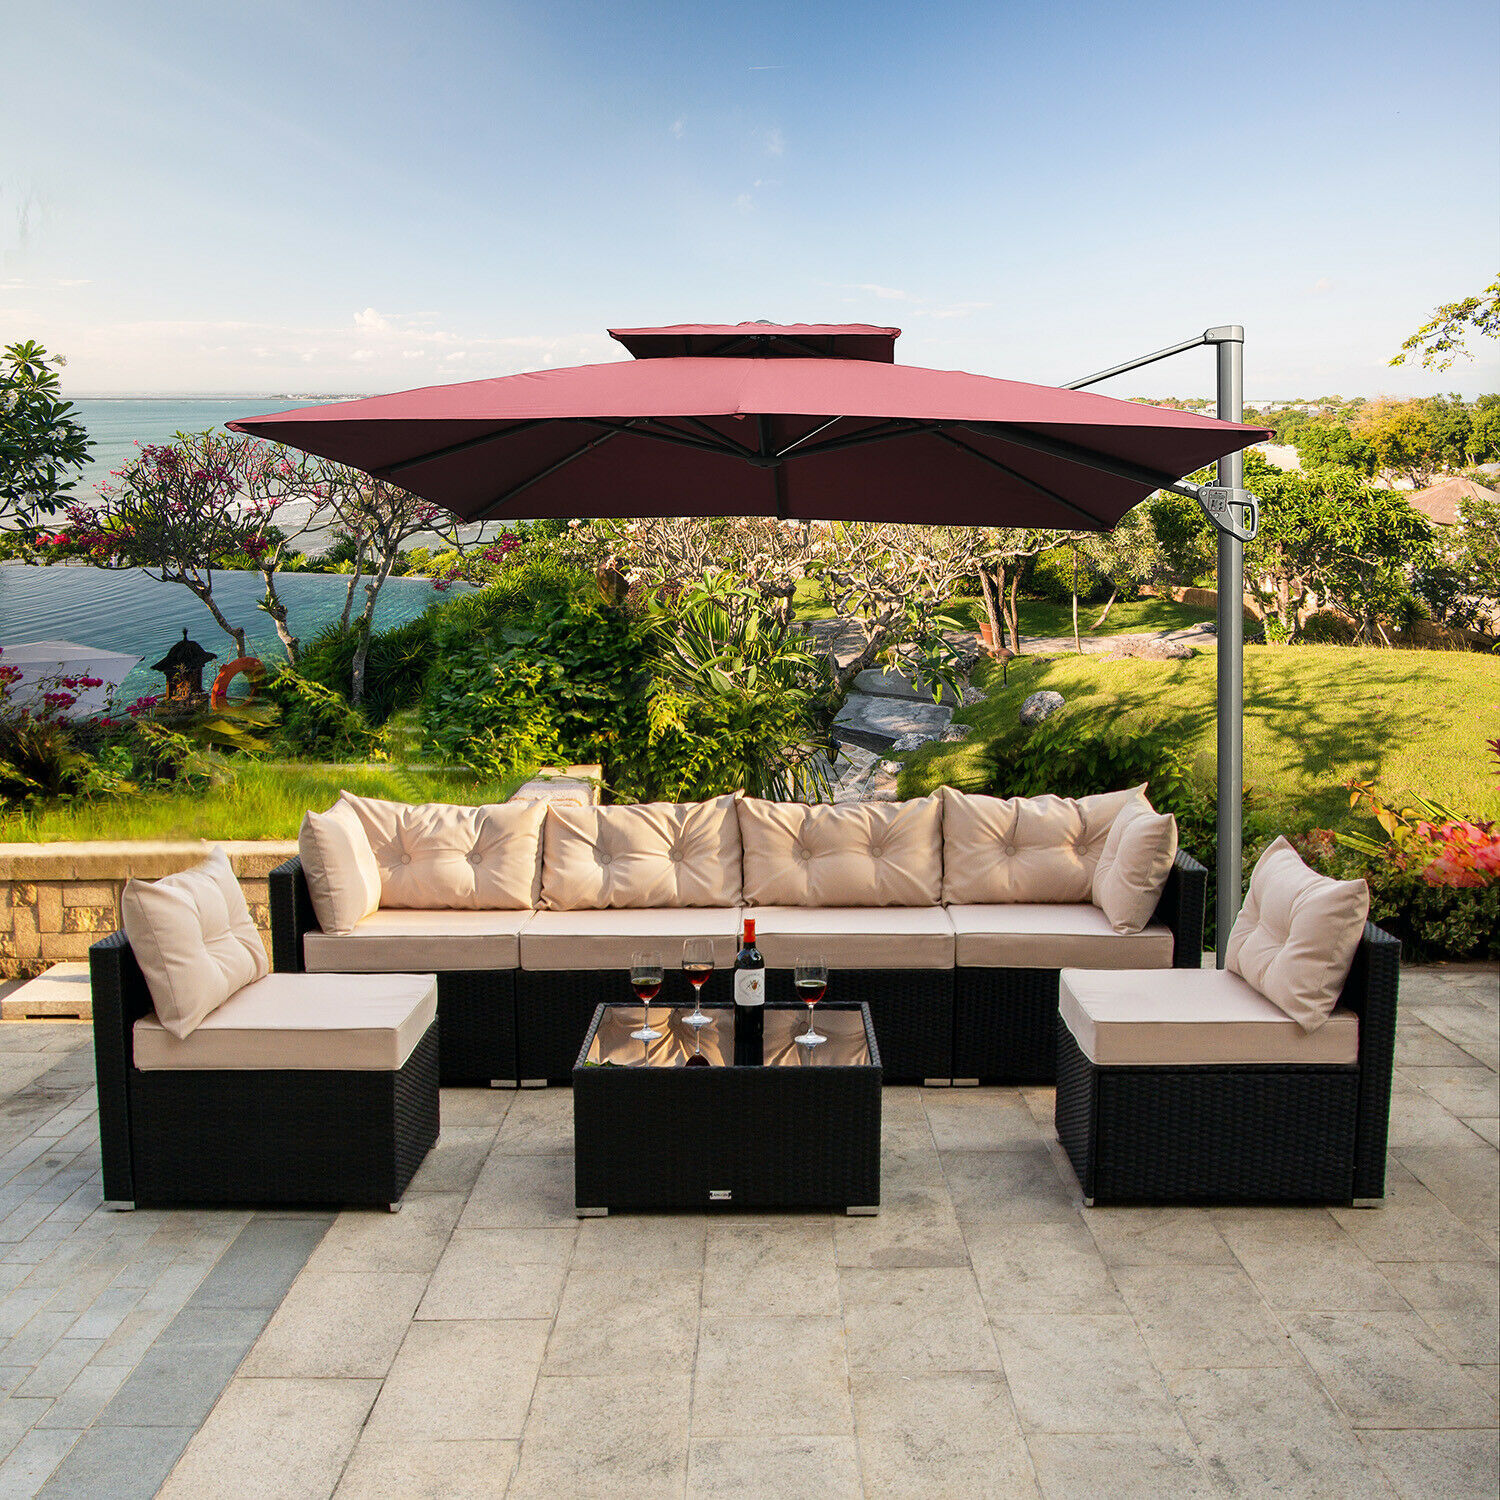 Garden Furniture - 7 PC Outdoor Patio Garden Furniture Sectional Sofa Set Rattan with Table Beige